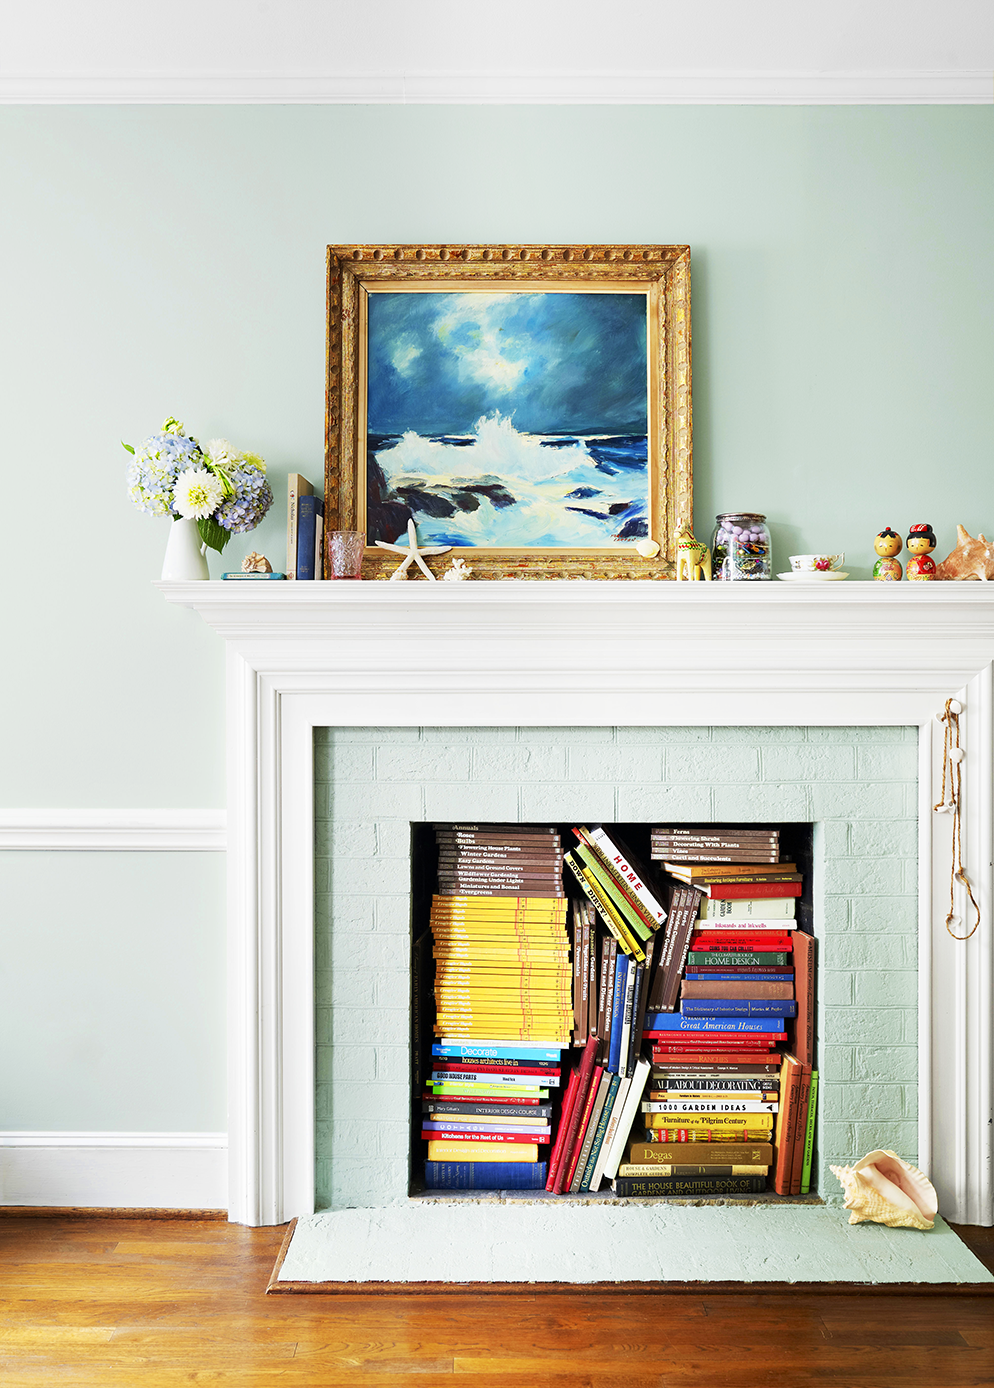 15 Fireplace Ideas to Elevate Any Mantel Anytime of the Year